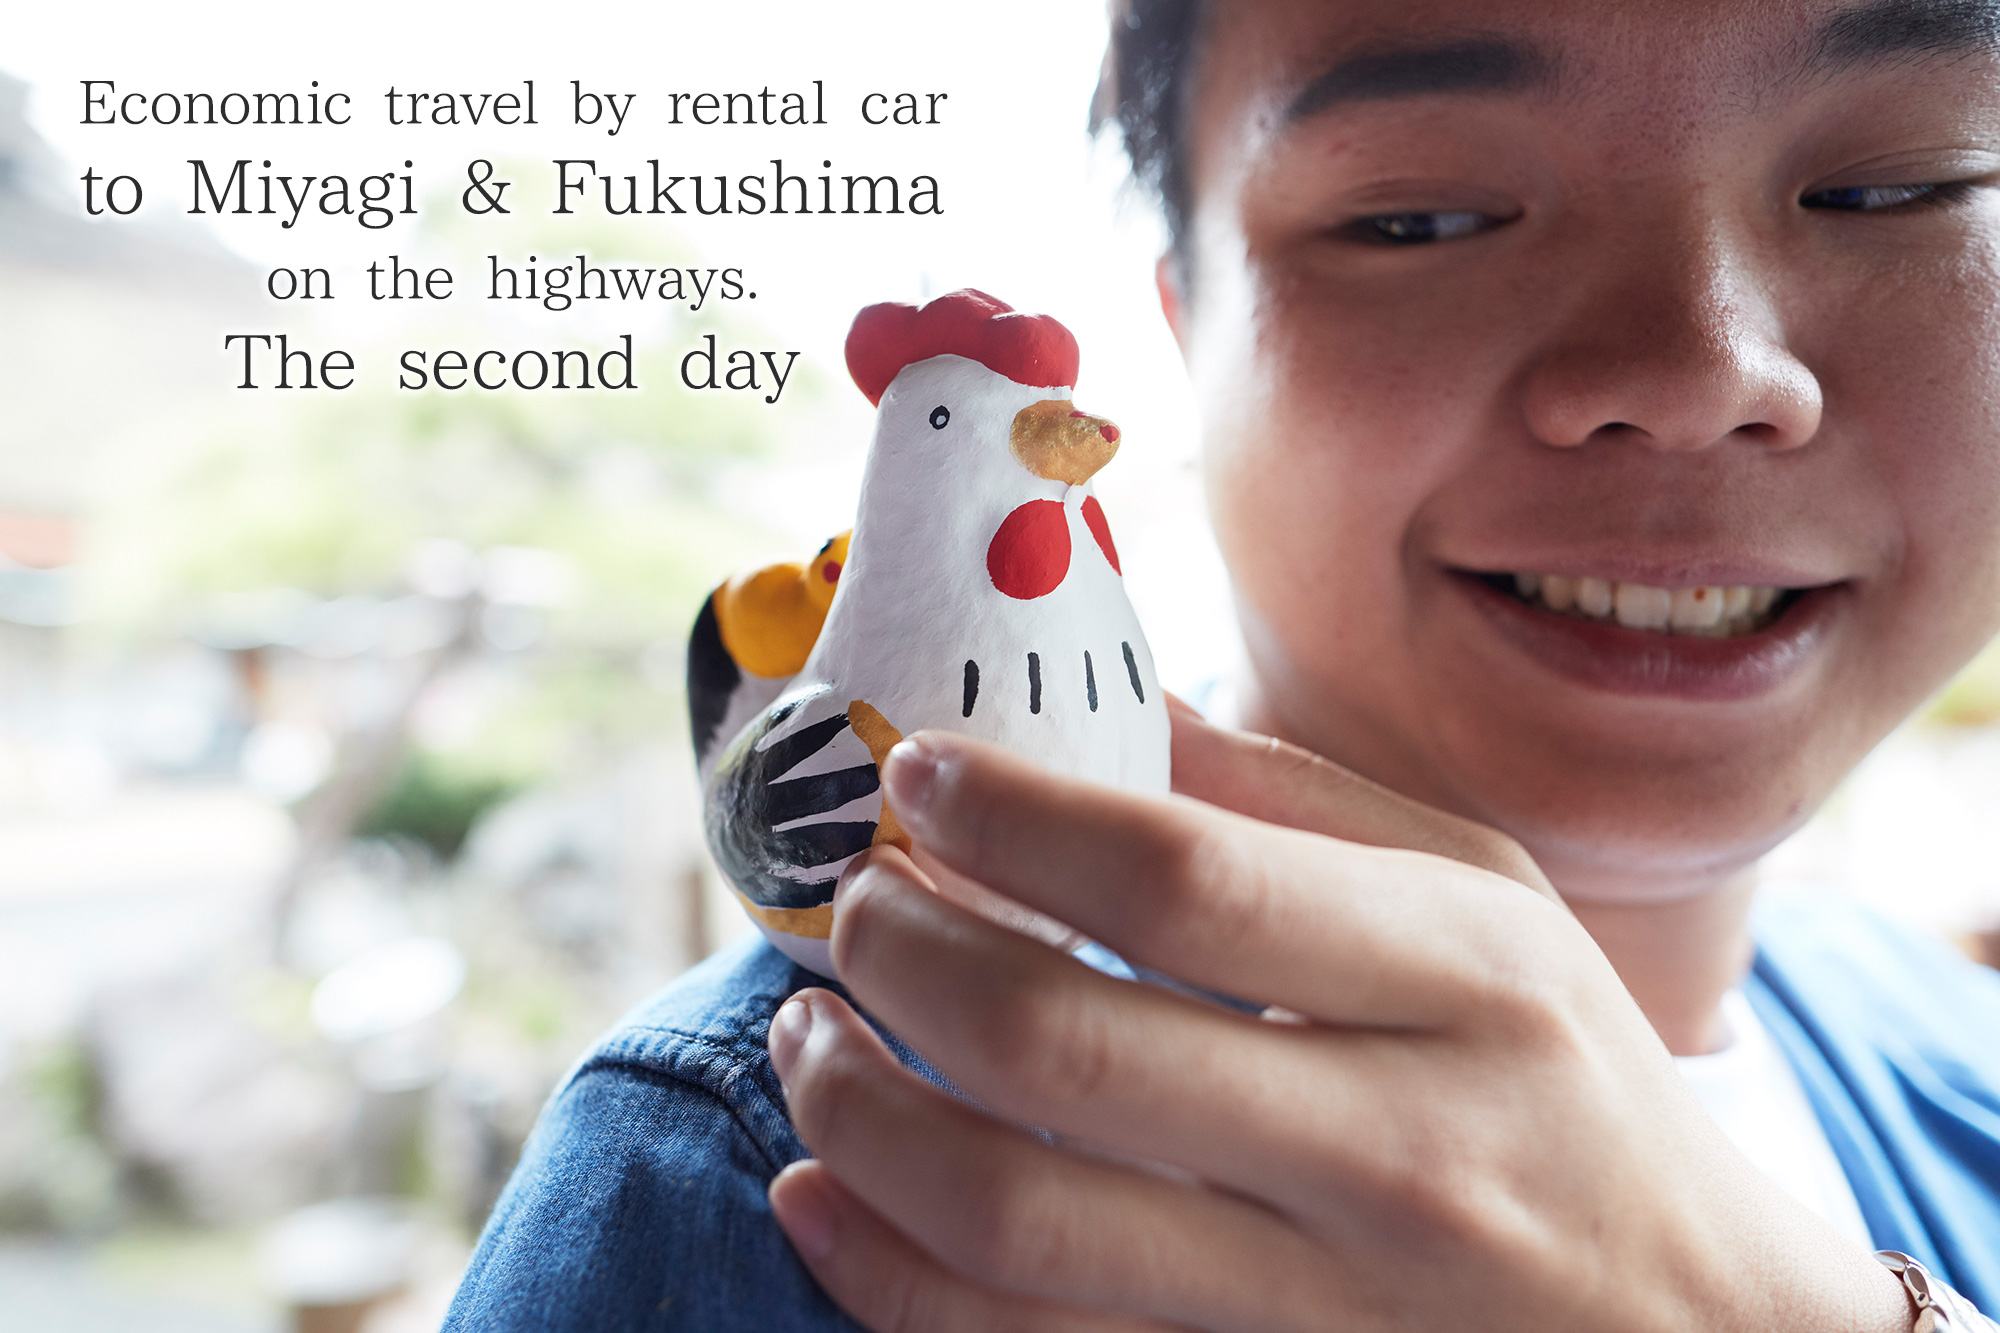 〜The second day〜Economic travel by rental car to Miyagi & Fukushima on the highways